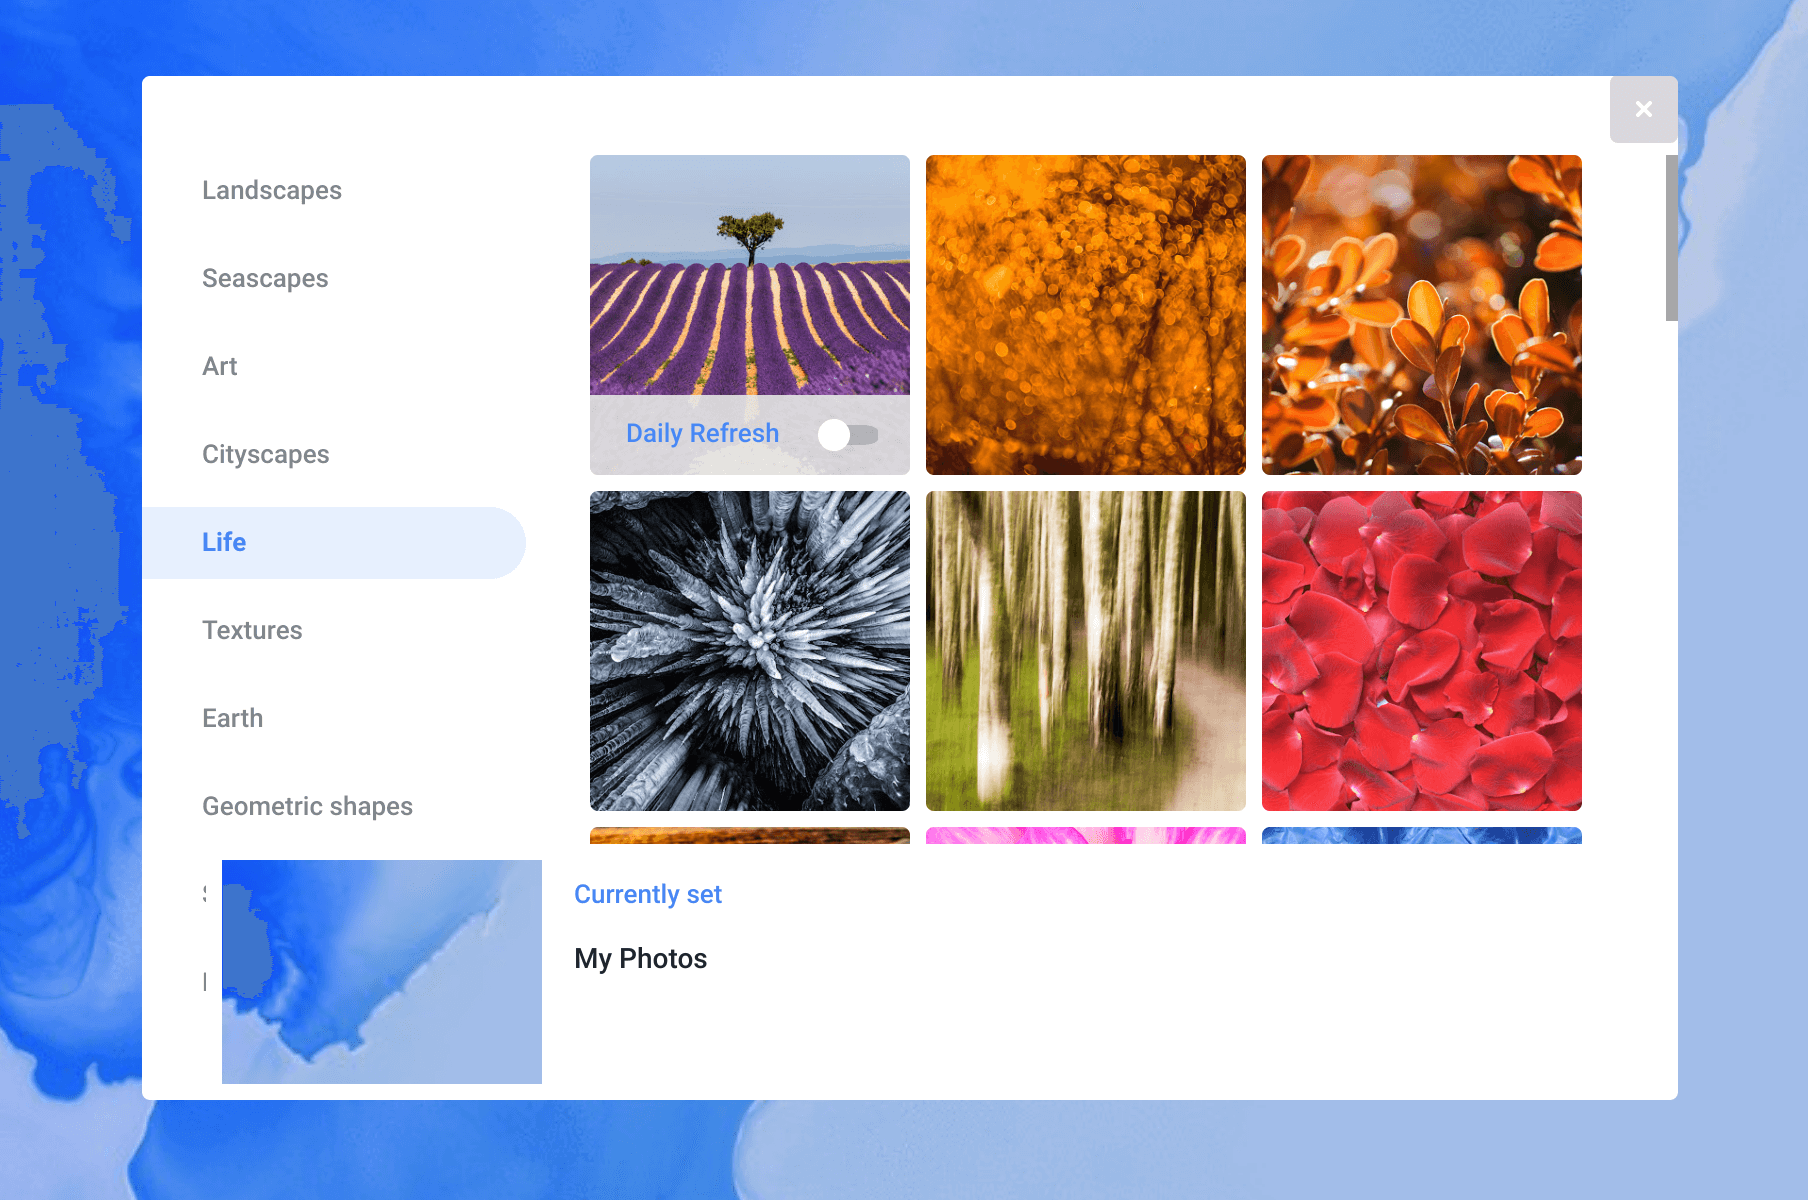 New Wallpaper Picker in Chrome OS